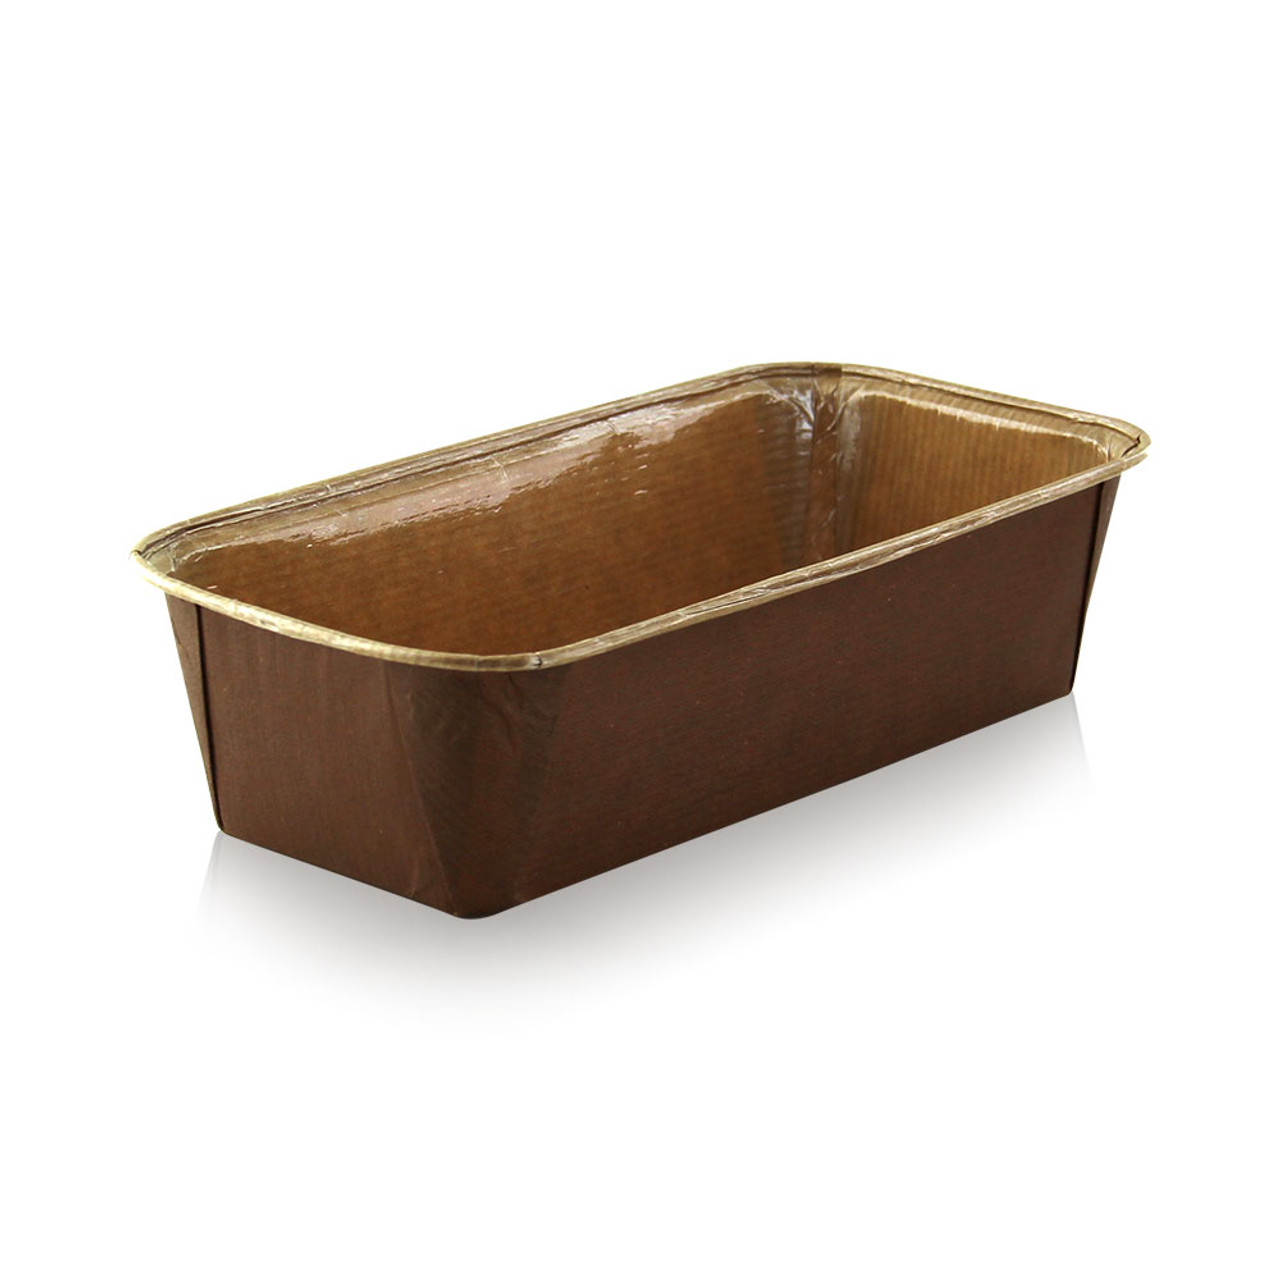 Free Standing Rectangular Kraft Paper Baking Mold -25oz L:6.5 x W:2.6 x H:1.88in